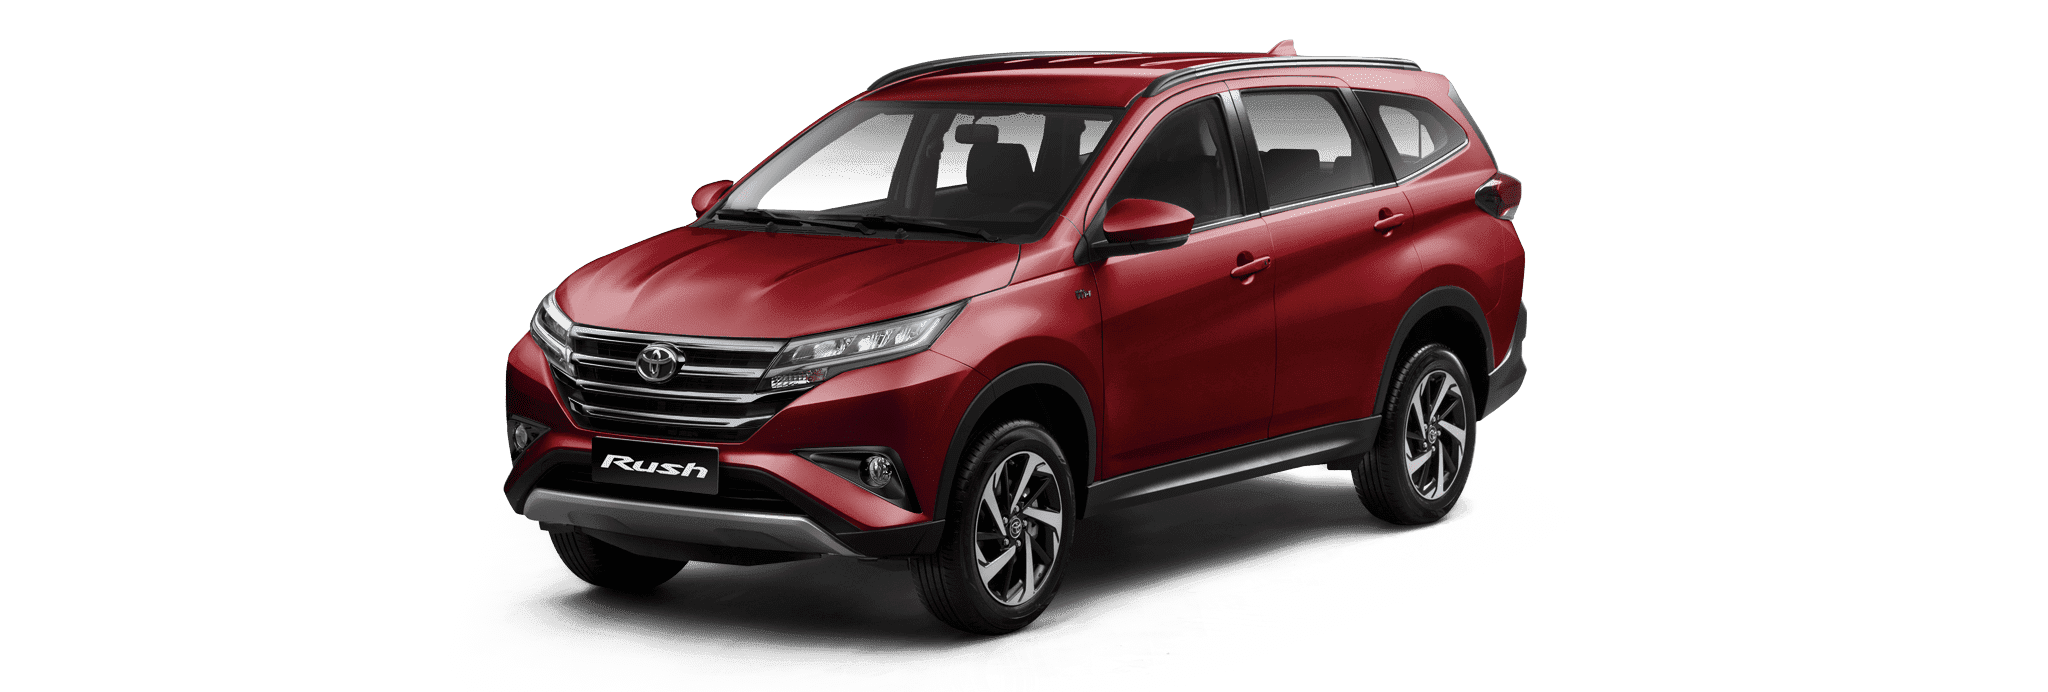 Toyota Rush SUV Red